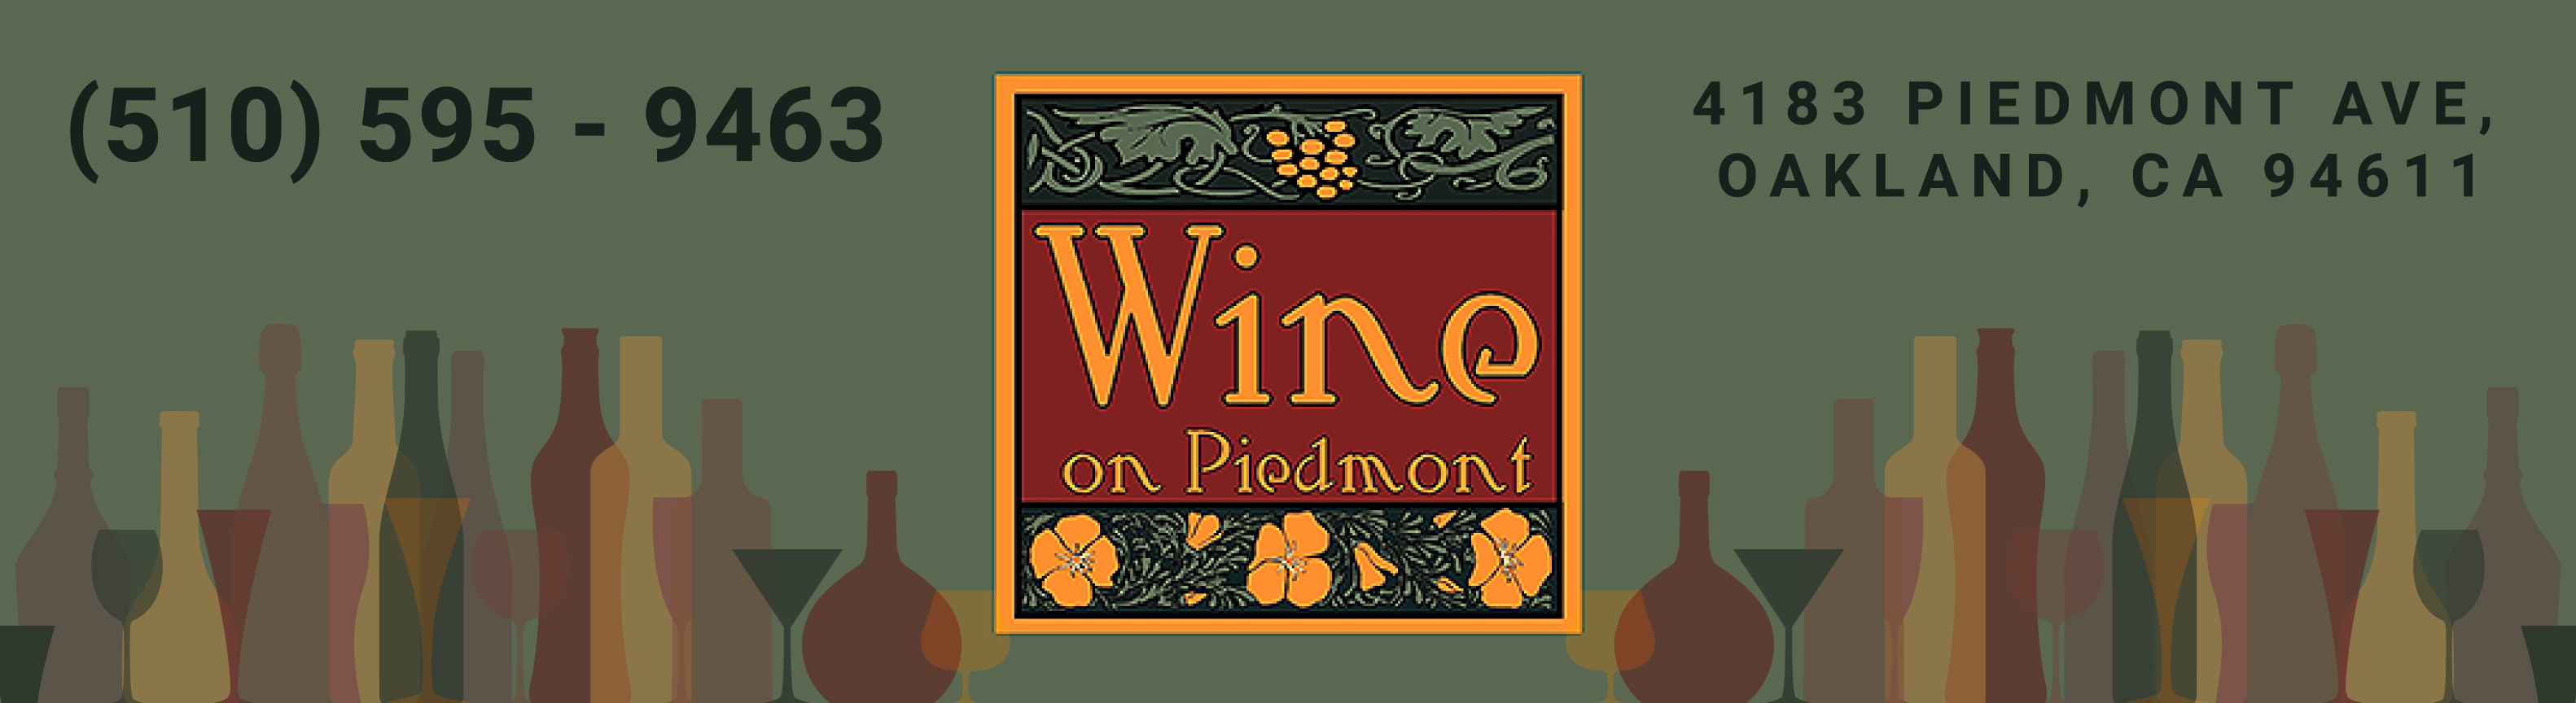 Wine on Piedmont